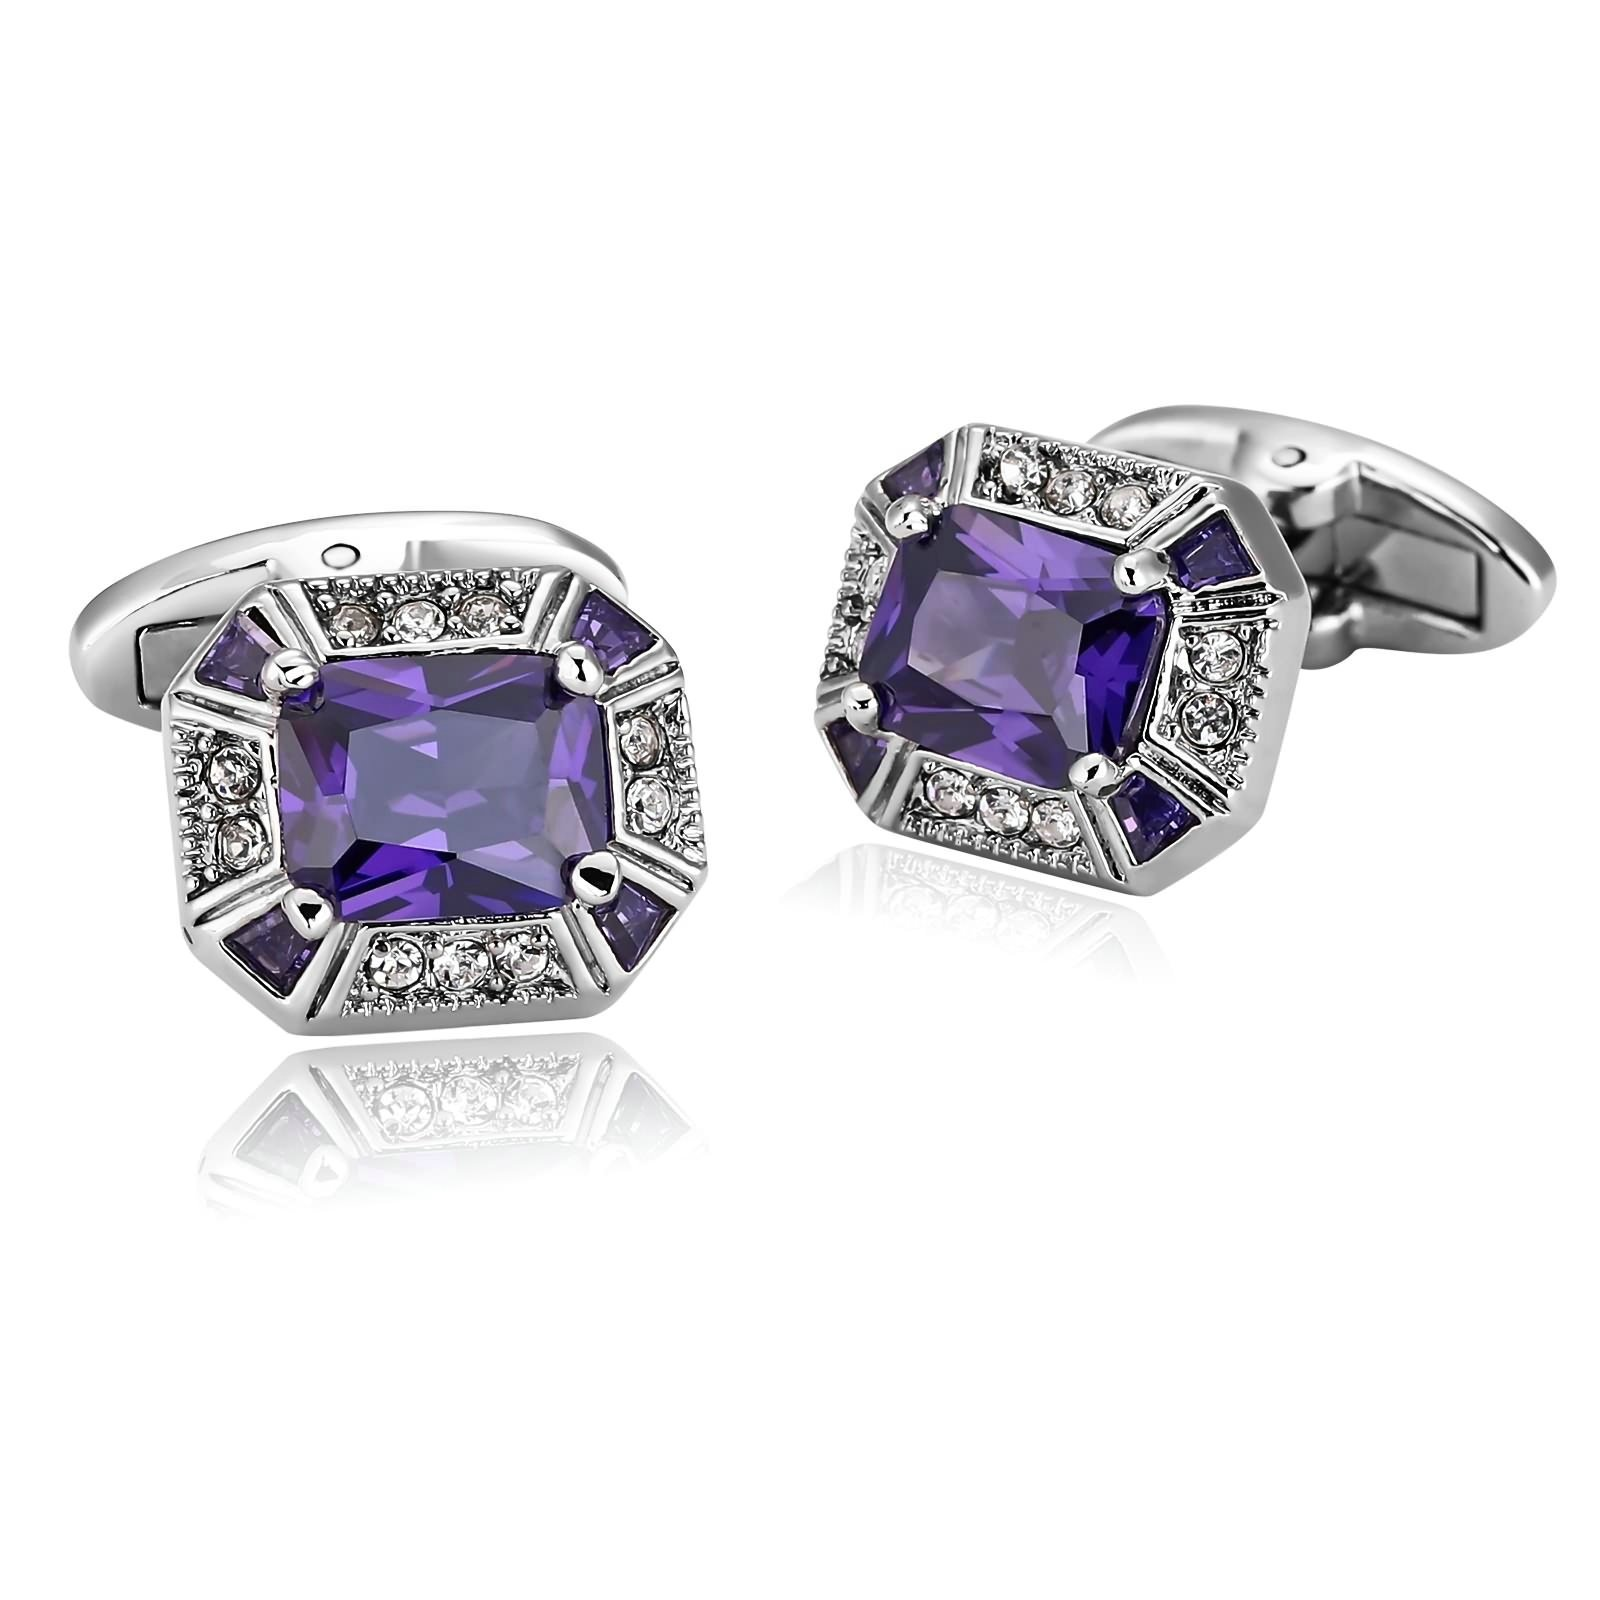 KnSam Stainless Steel Silver Purple Elegant Large Cut Crystal Rectangle Cufflinks for Mens